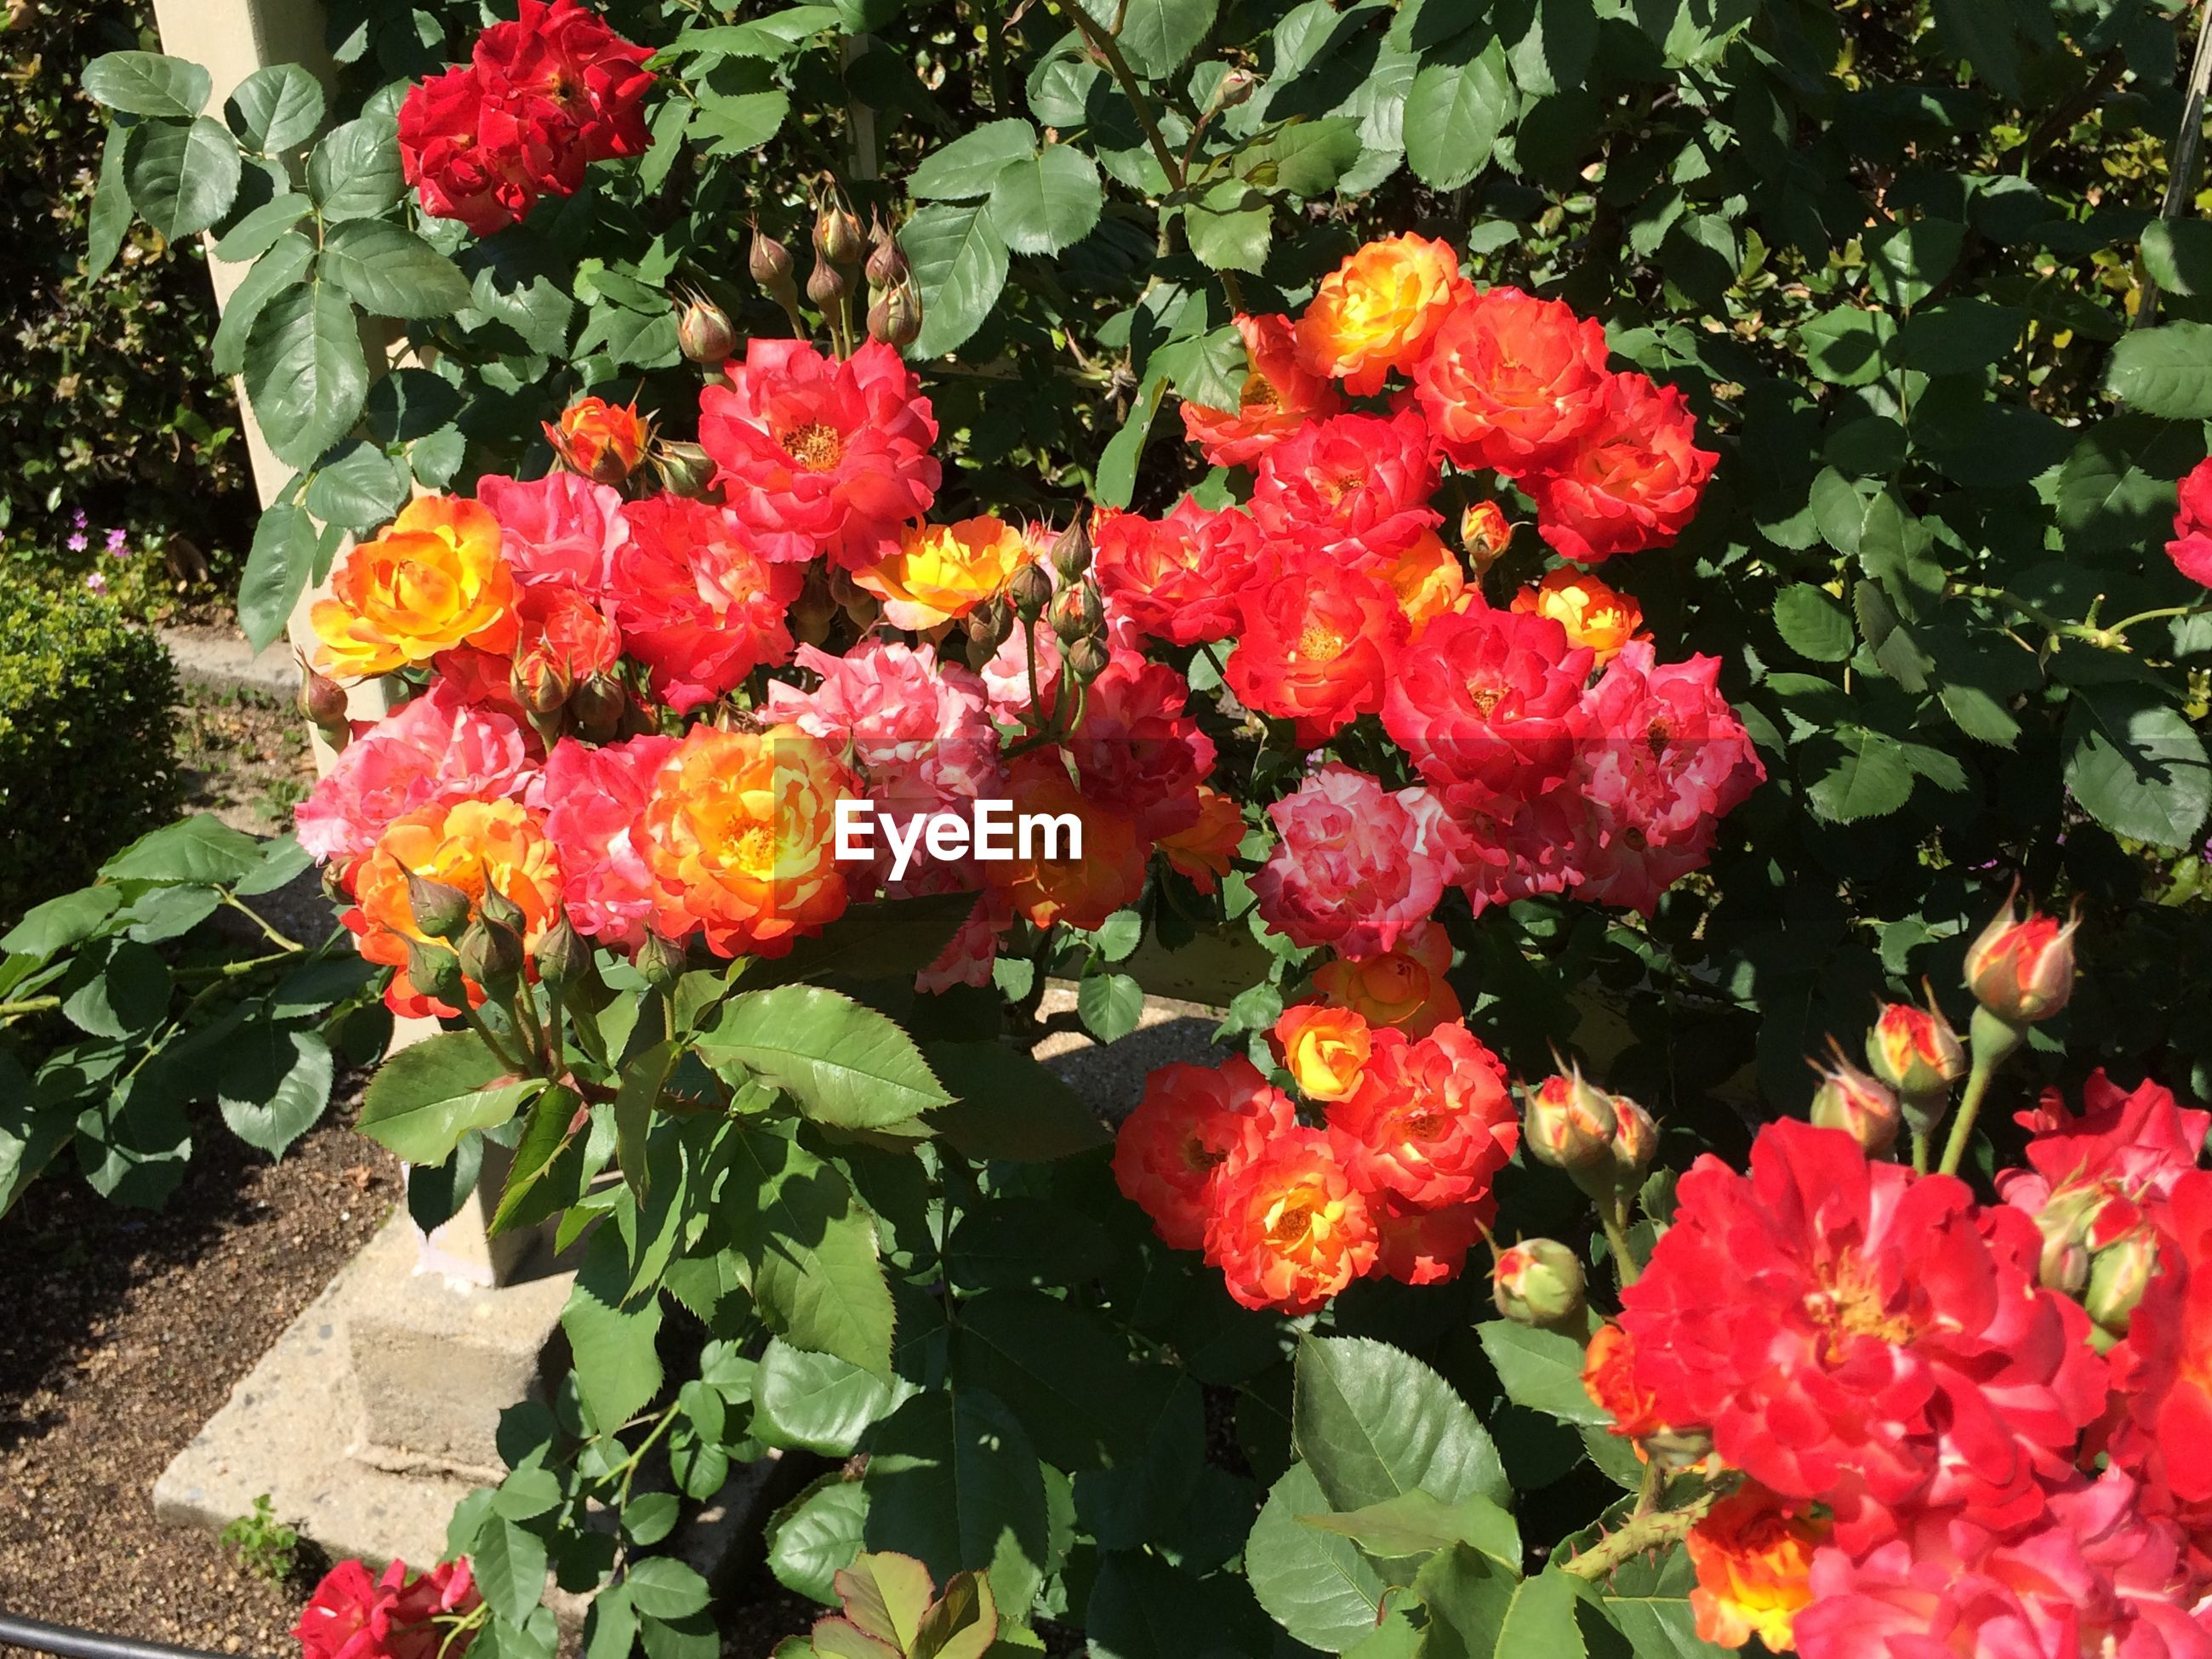 High angle view of red roses blooming outdoors